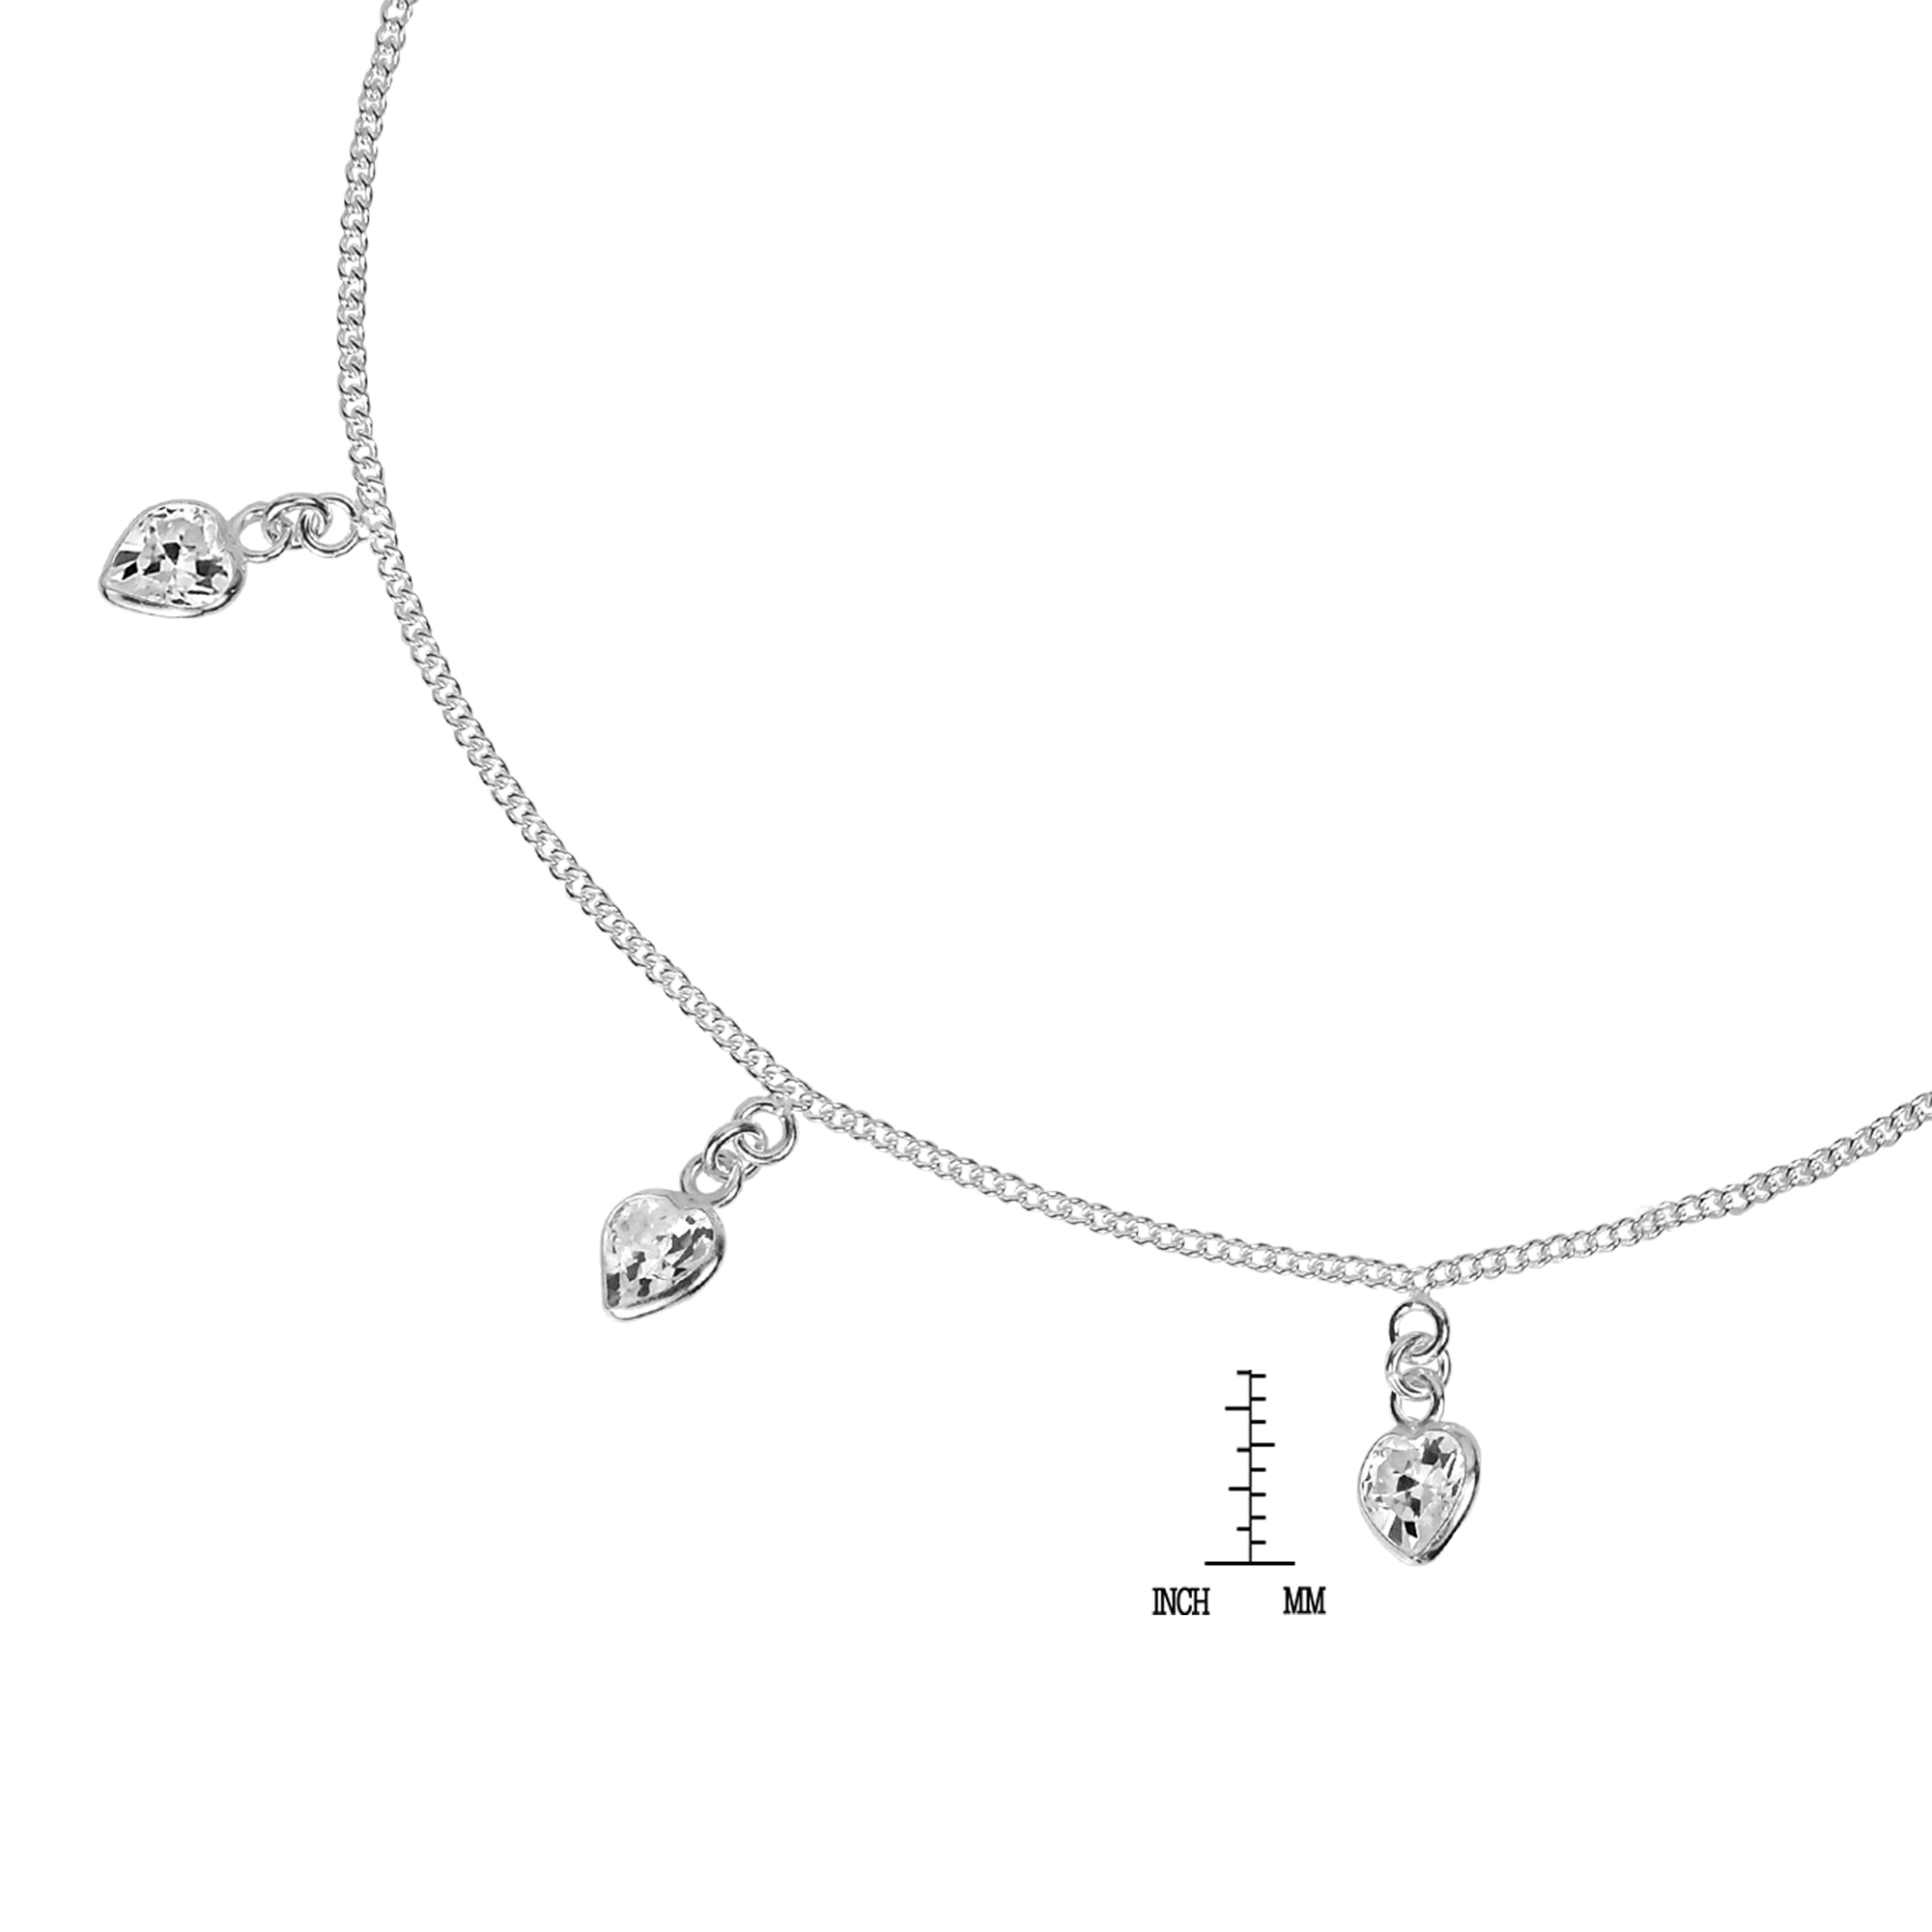 sterling silver free product watches jewelry bracelet heart overstock today anklet shipping charm dangling hearts